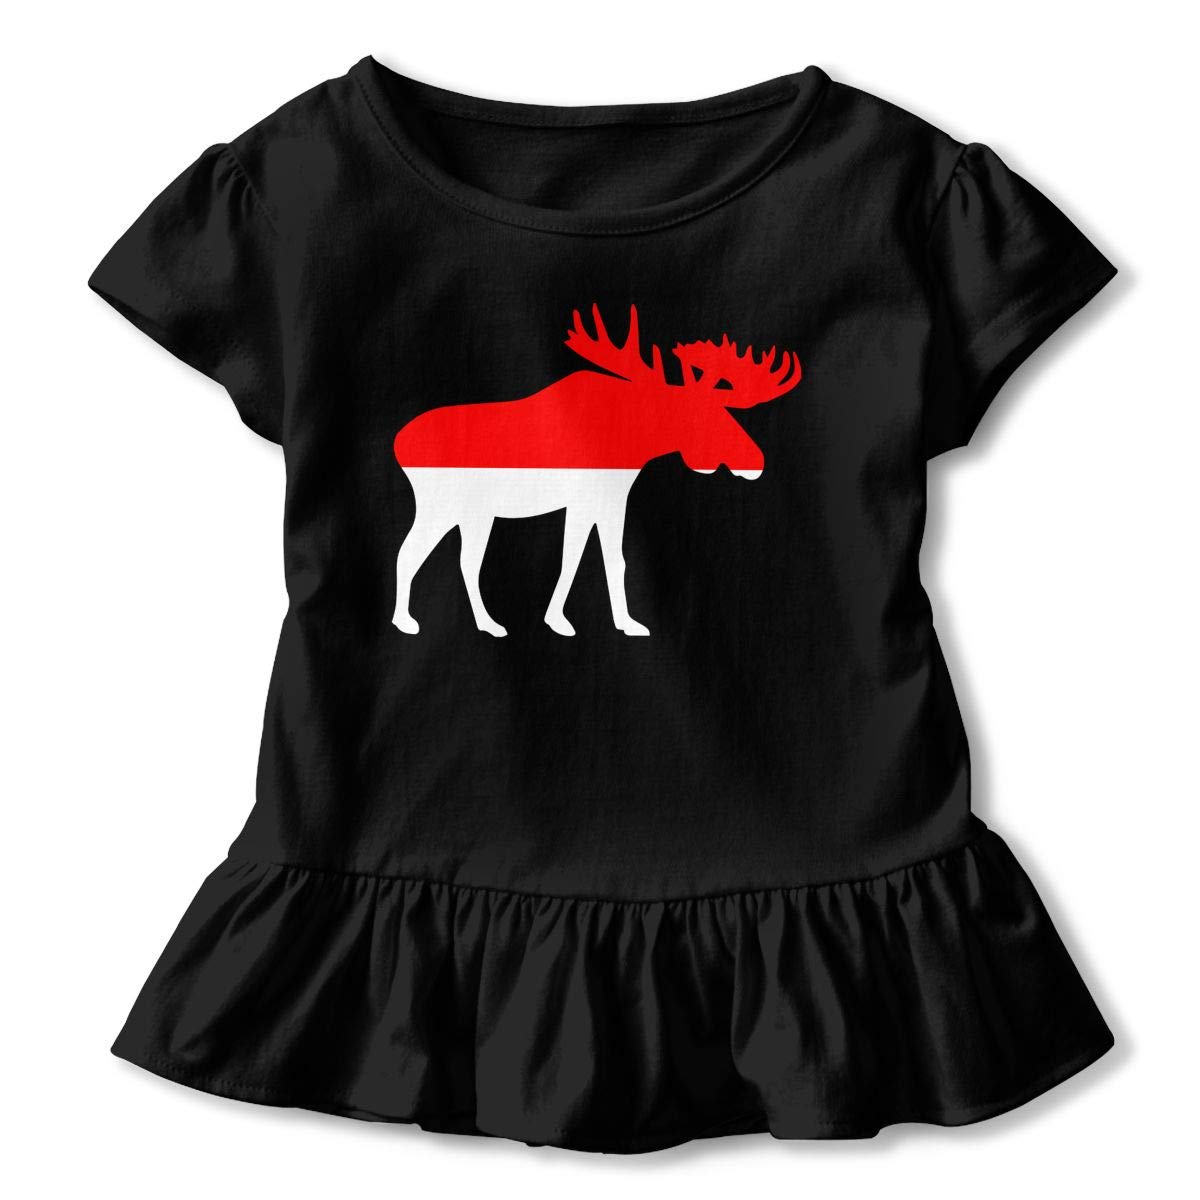 Cute Tunic Tops with Falbala Zi7J9q-0 Short-Sleeve Indonesia Moose T-Shirts for Girls 2-6T